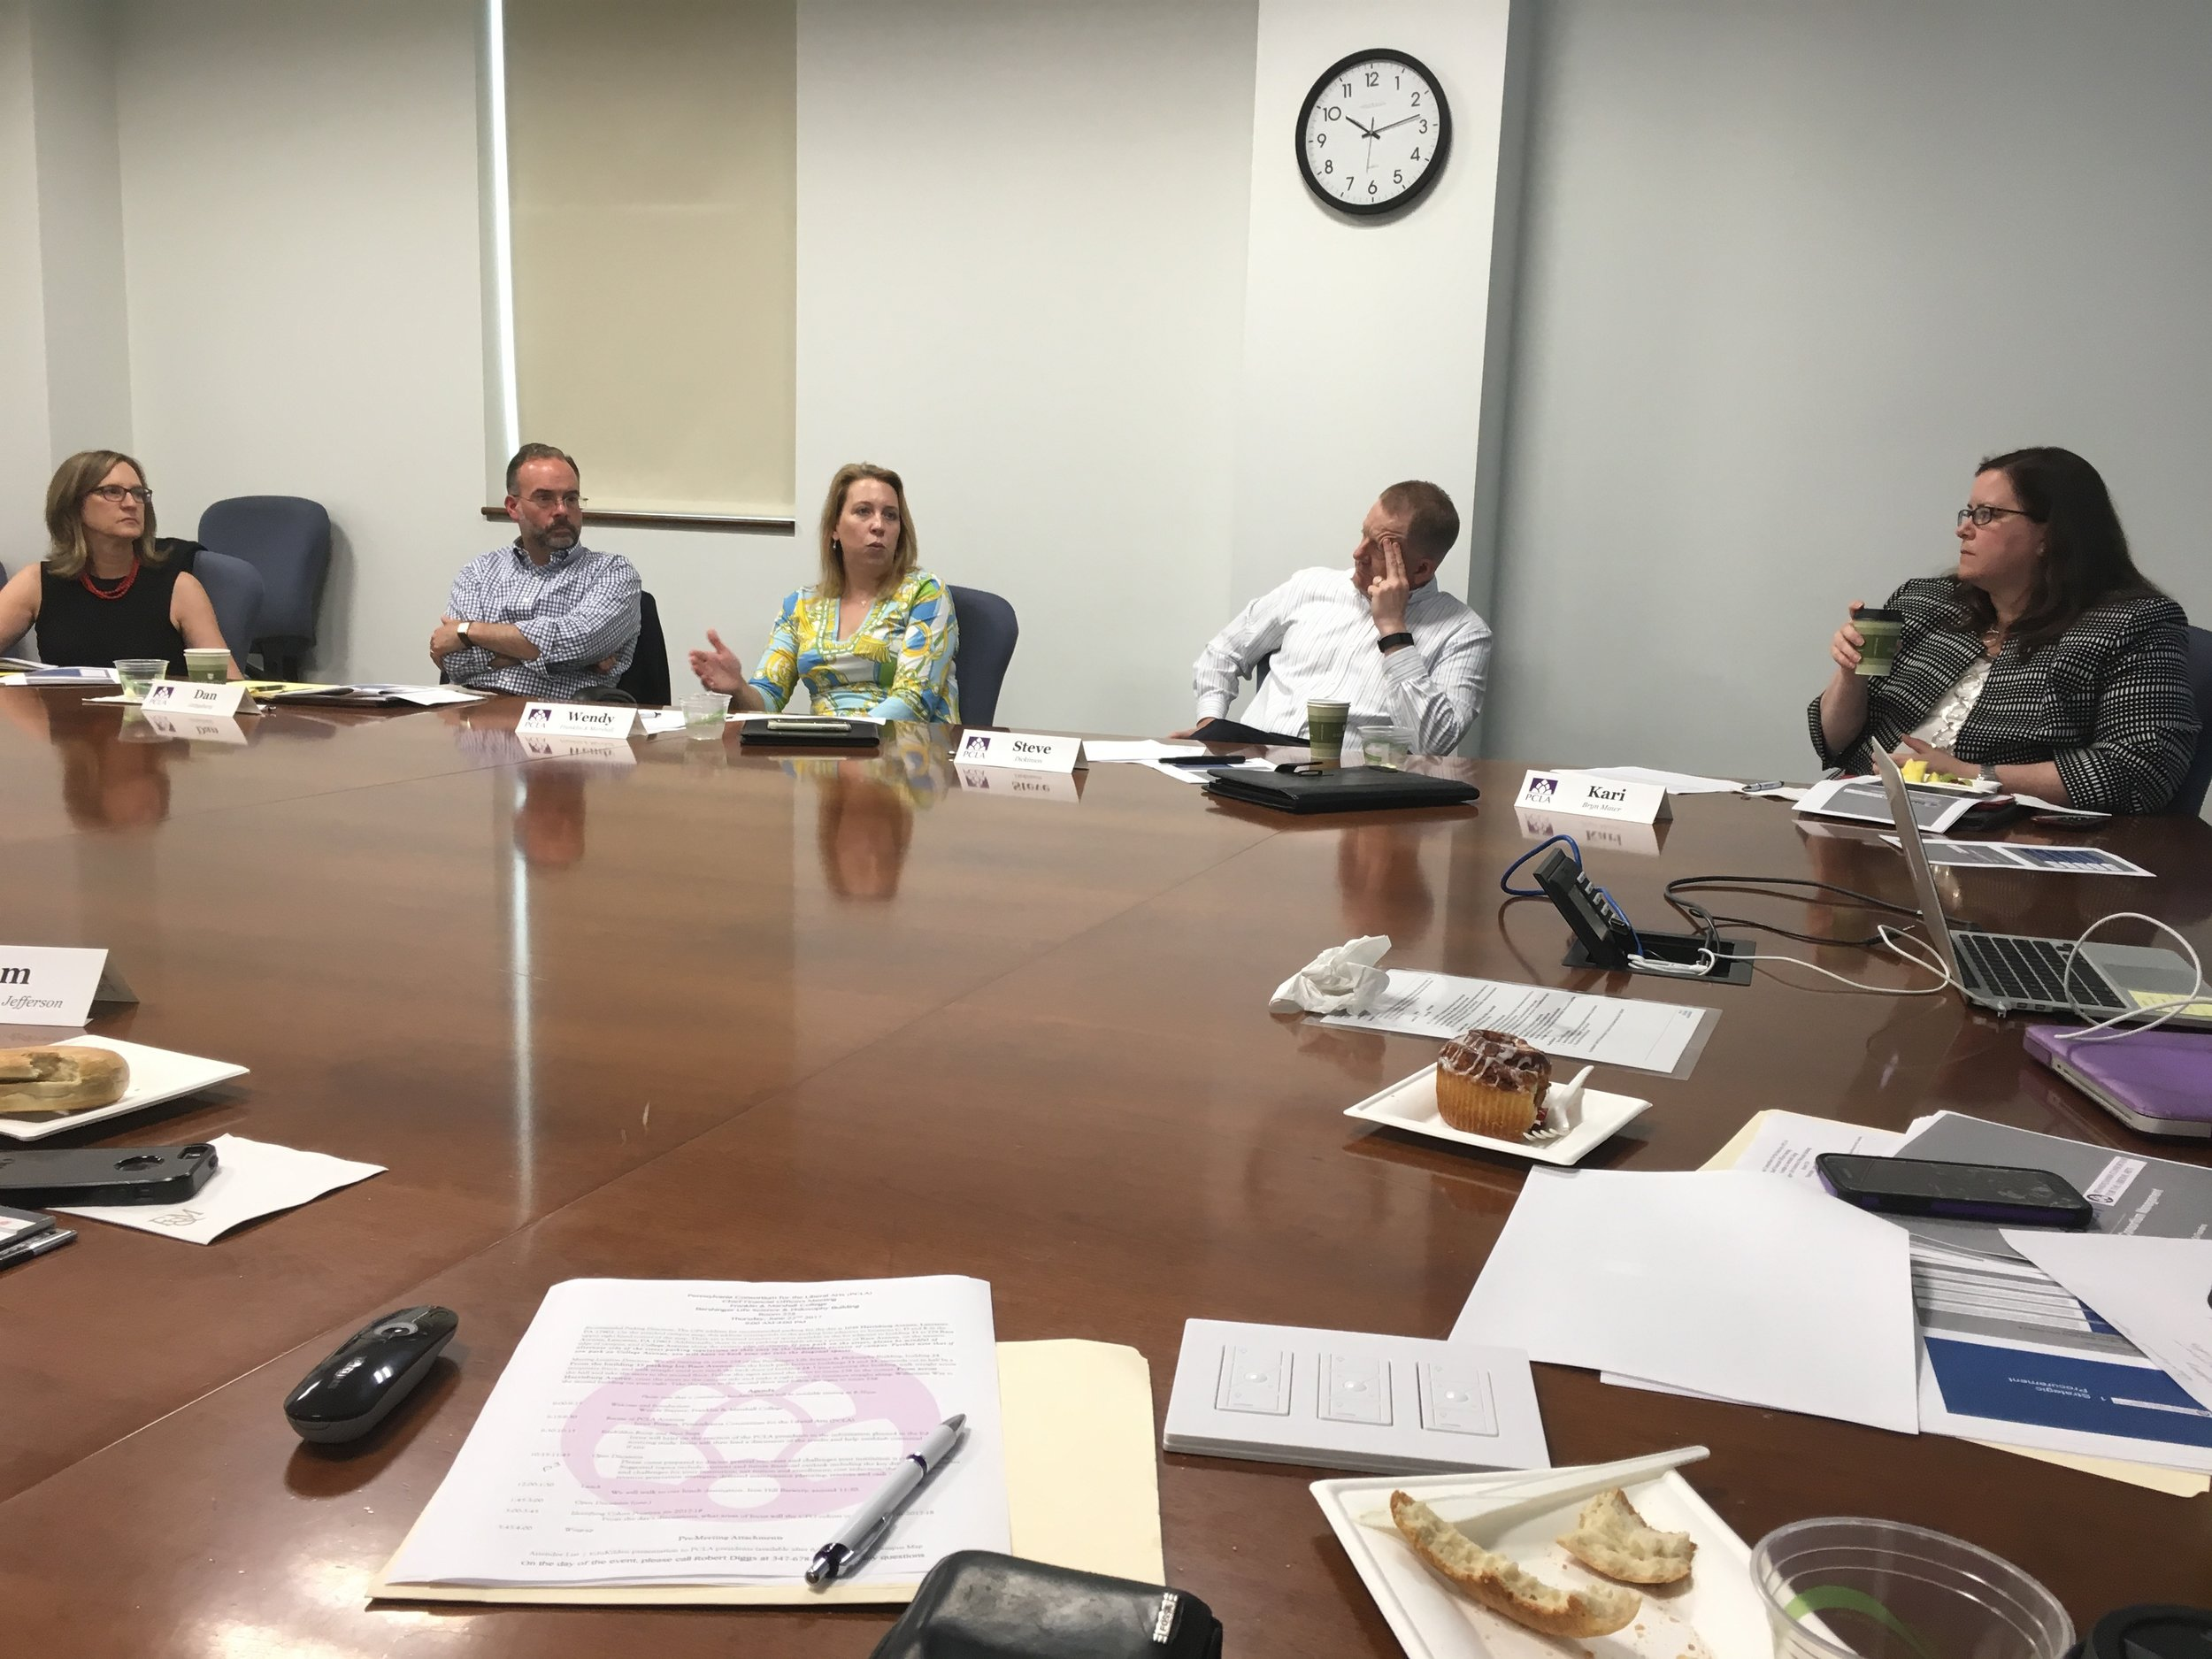 PCLA Chief Financial Officers meeting